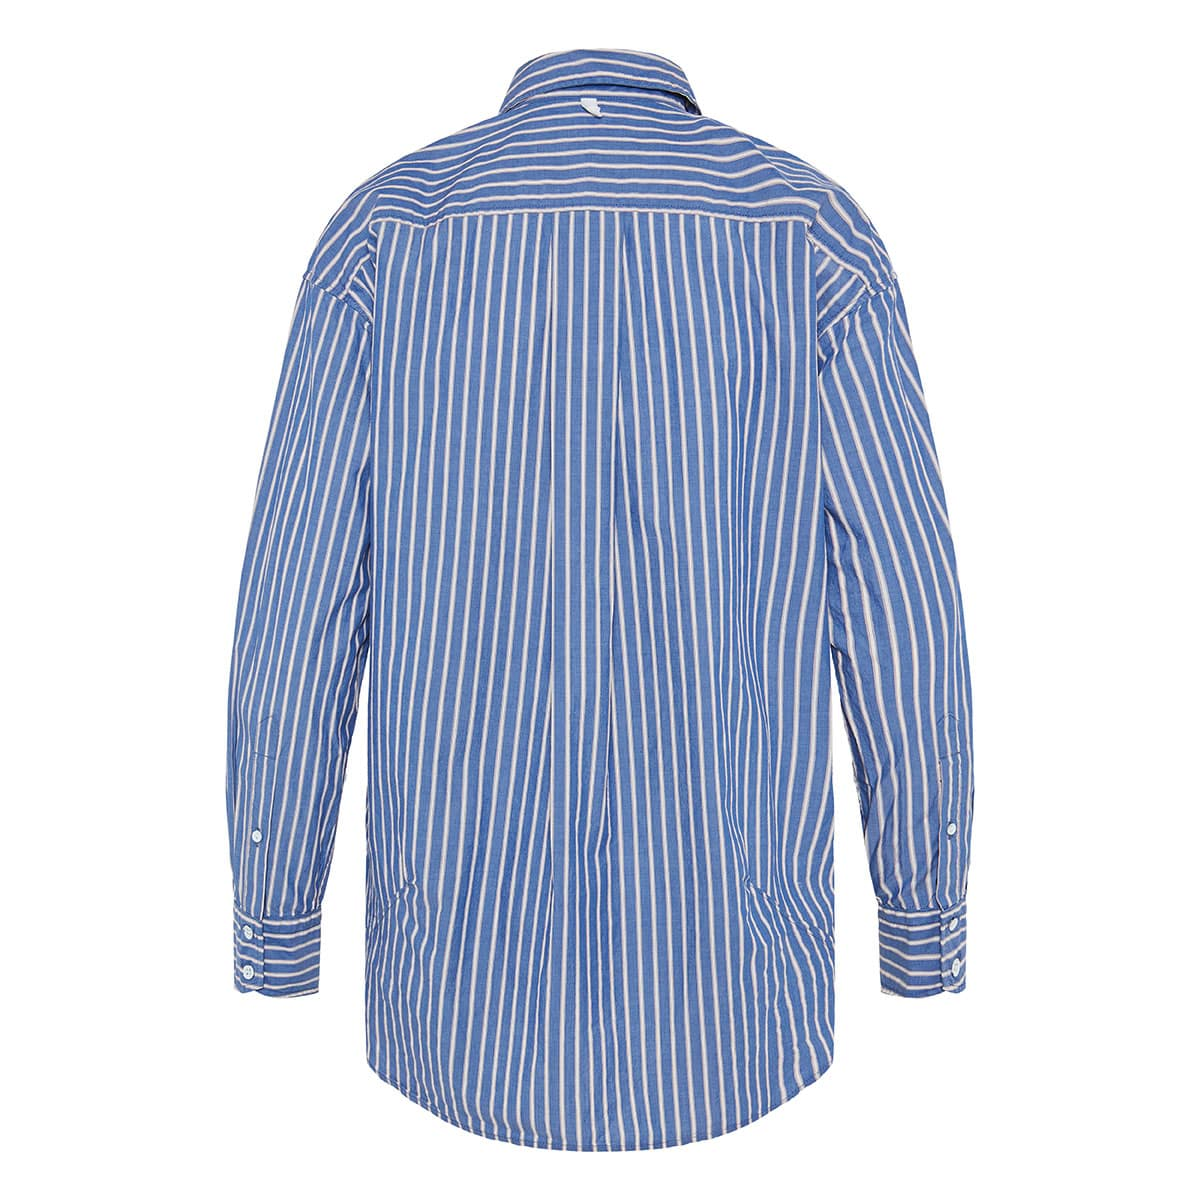 Alina oversized striped poplin shirt